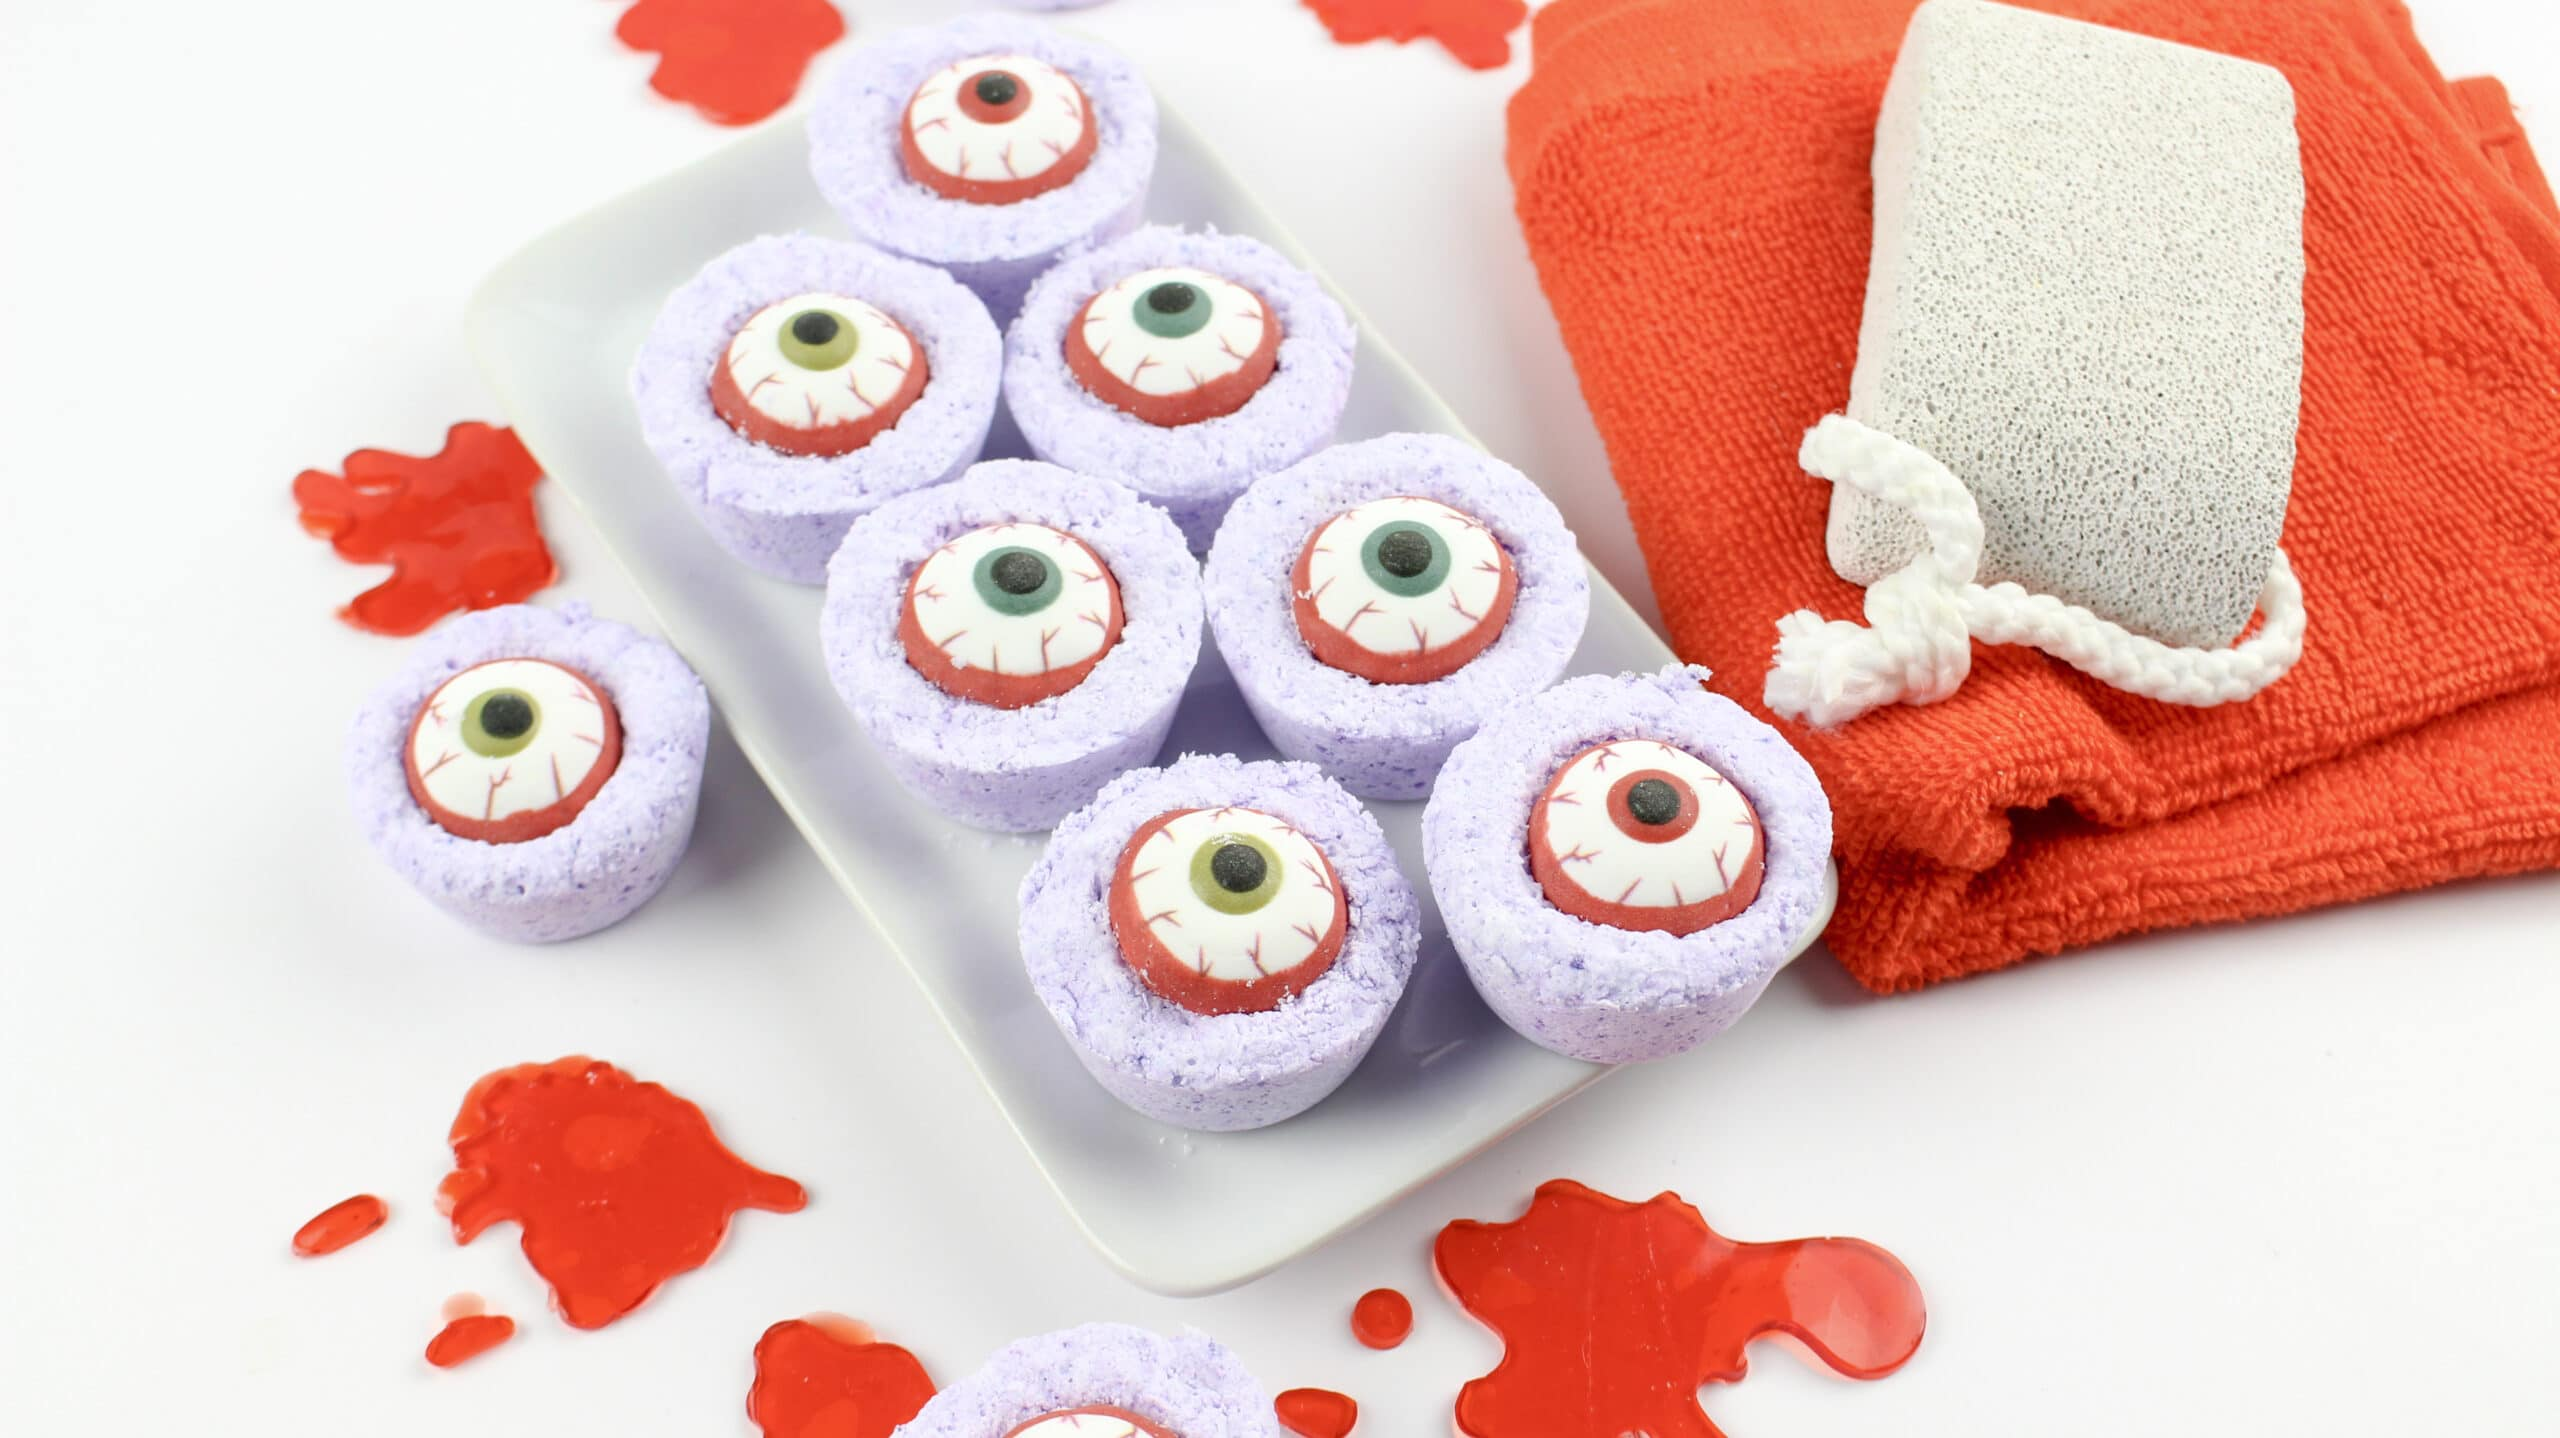 Diy Zombie Eyes Bath Bombs Jays Sweet N Sour Life